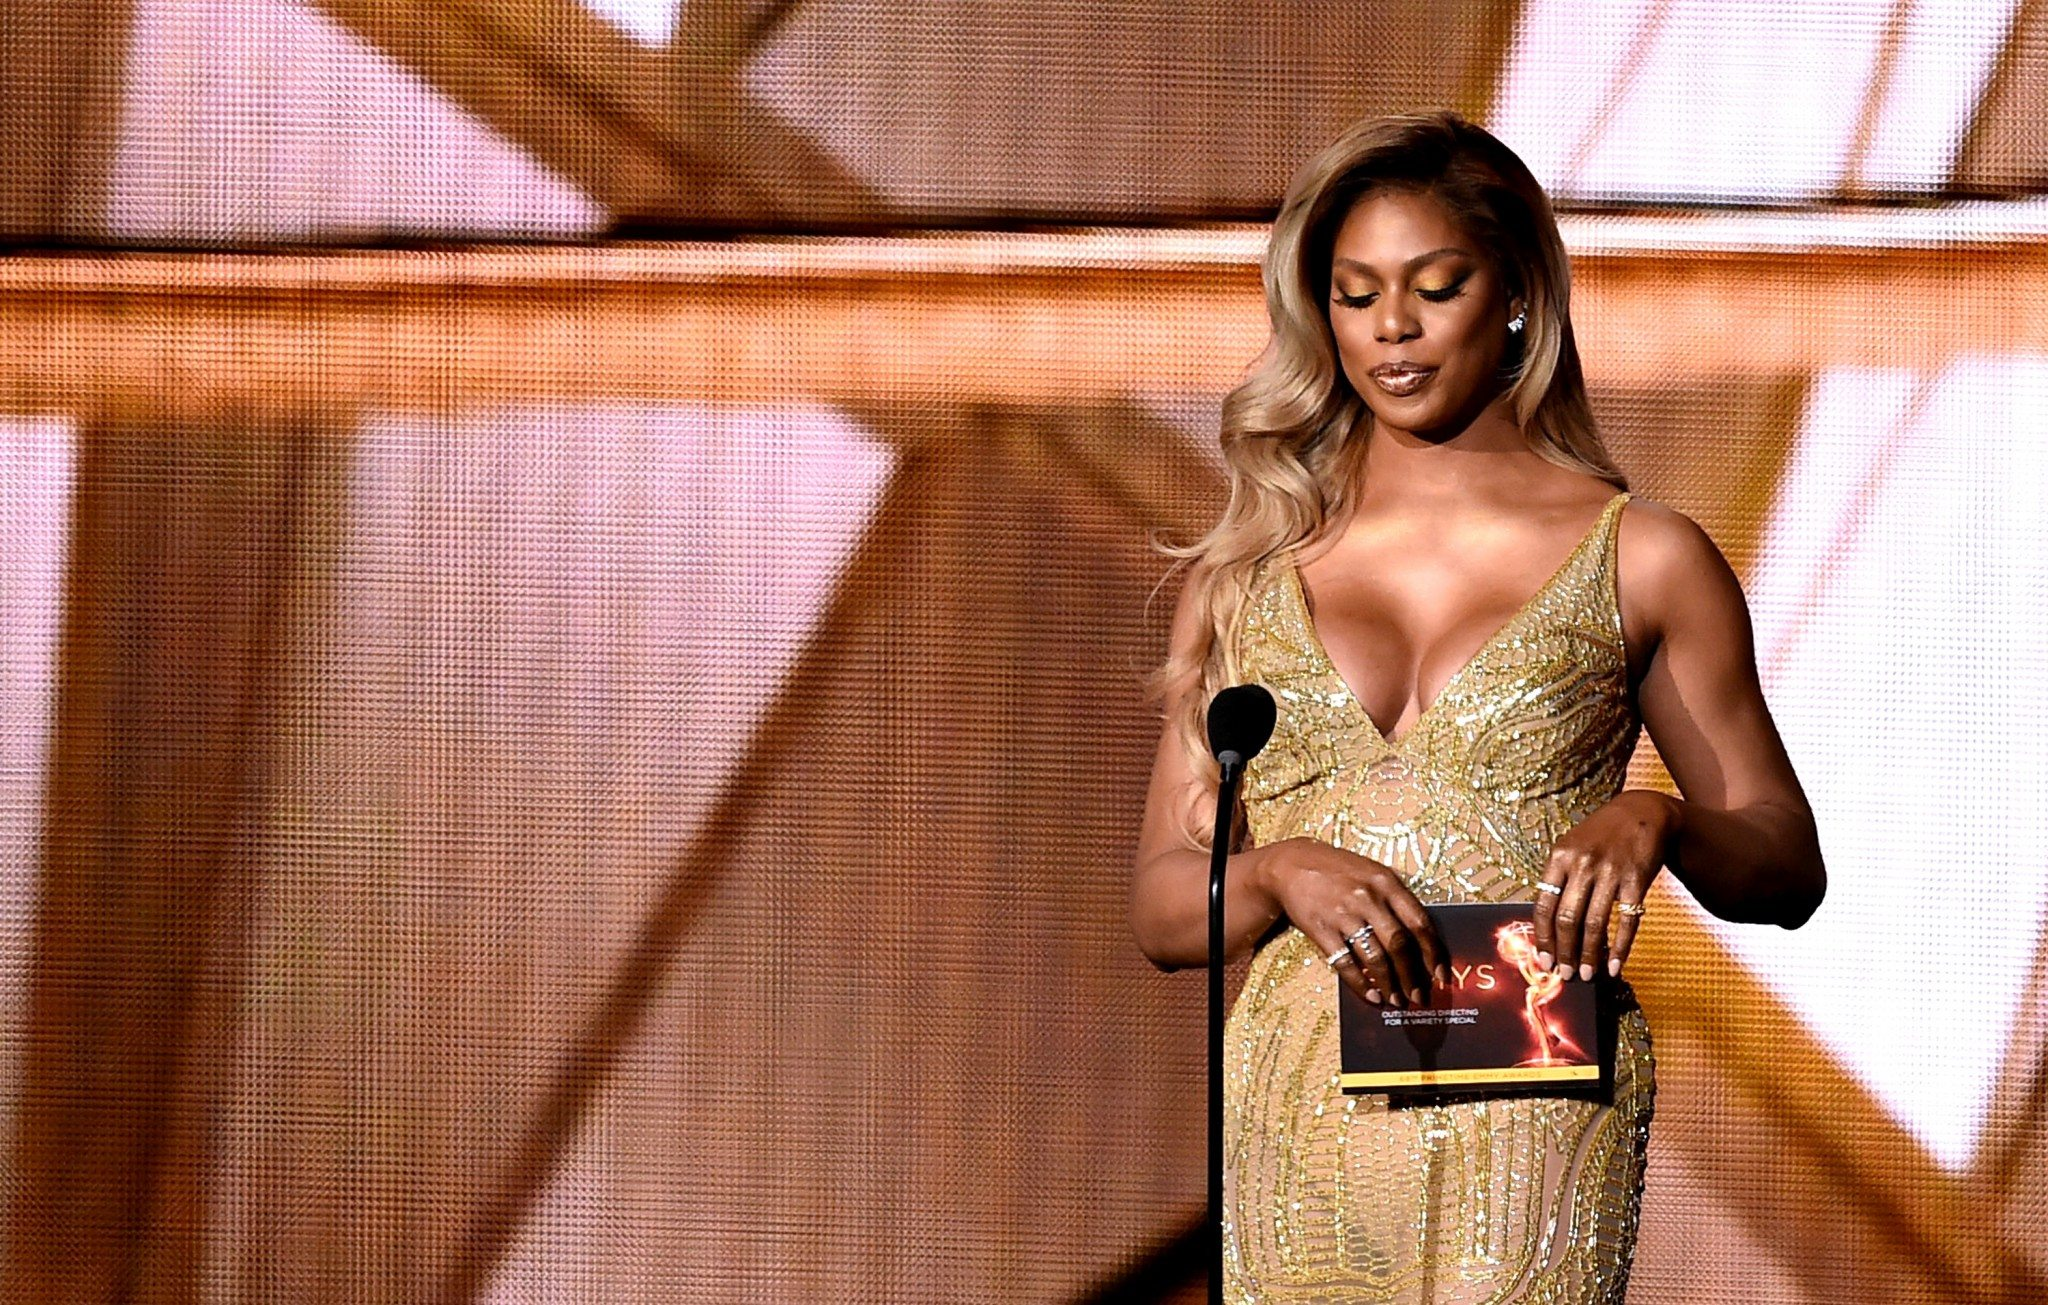 LOS ANGELES, CA - SEPTEMBER 18: Actress Laverne Cox speaks onstage during the 68th Annual Primetime Emmy Awards at Microsoft Theater on September 18, 2016 in Los Angeles, California. (Photo by Kevin Winter/Getty Images)